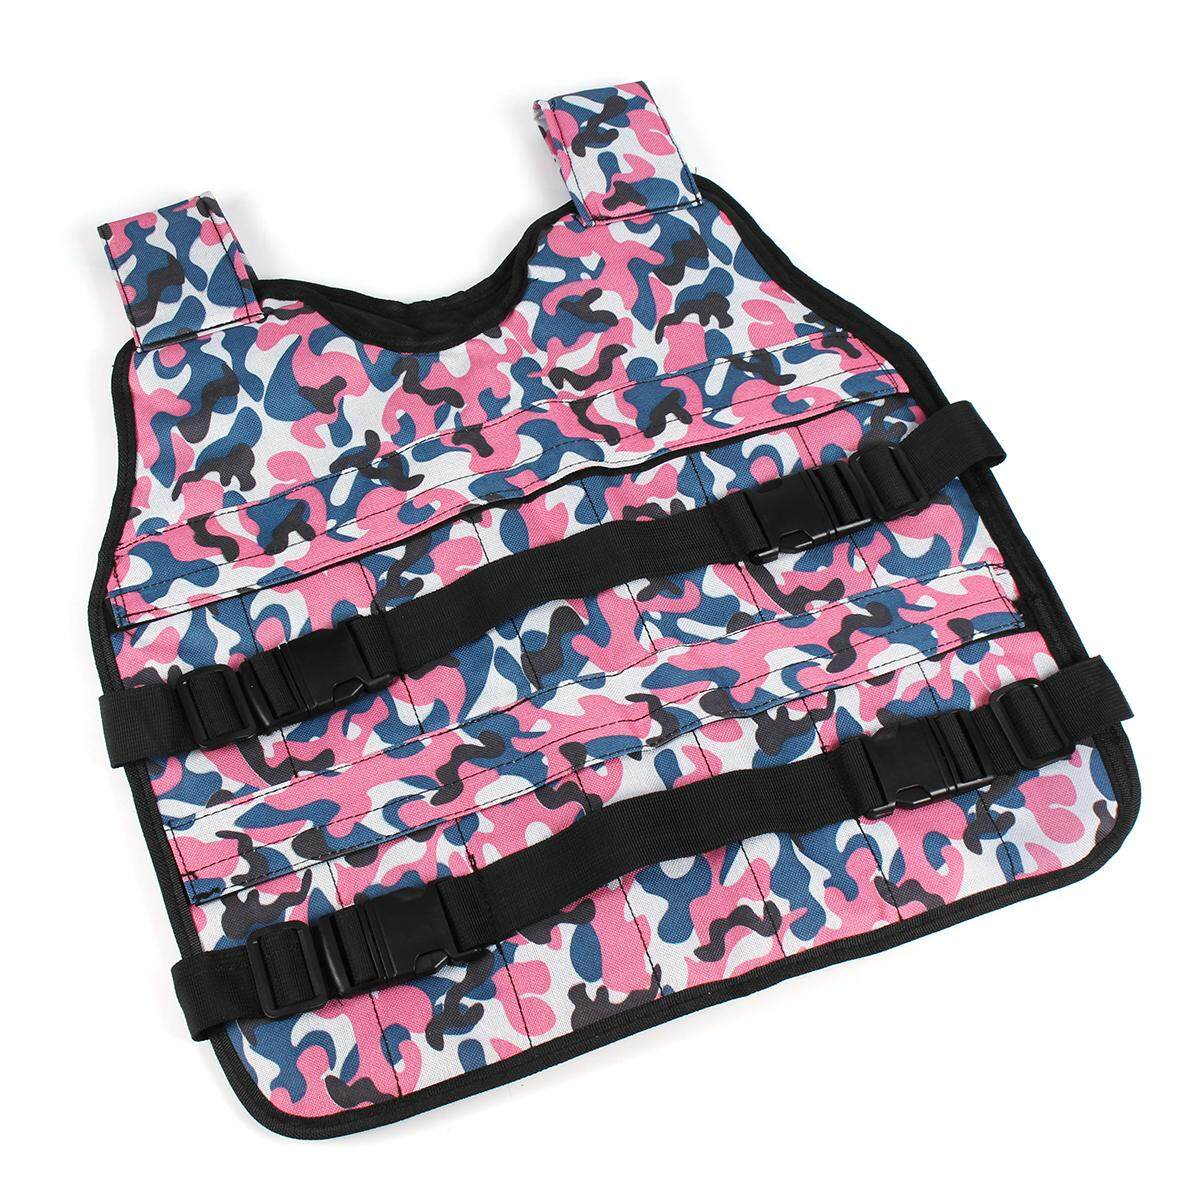 Adjustable Camouflage Weighted Weight Vest Training Fitness - NEW